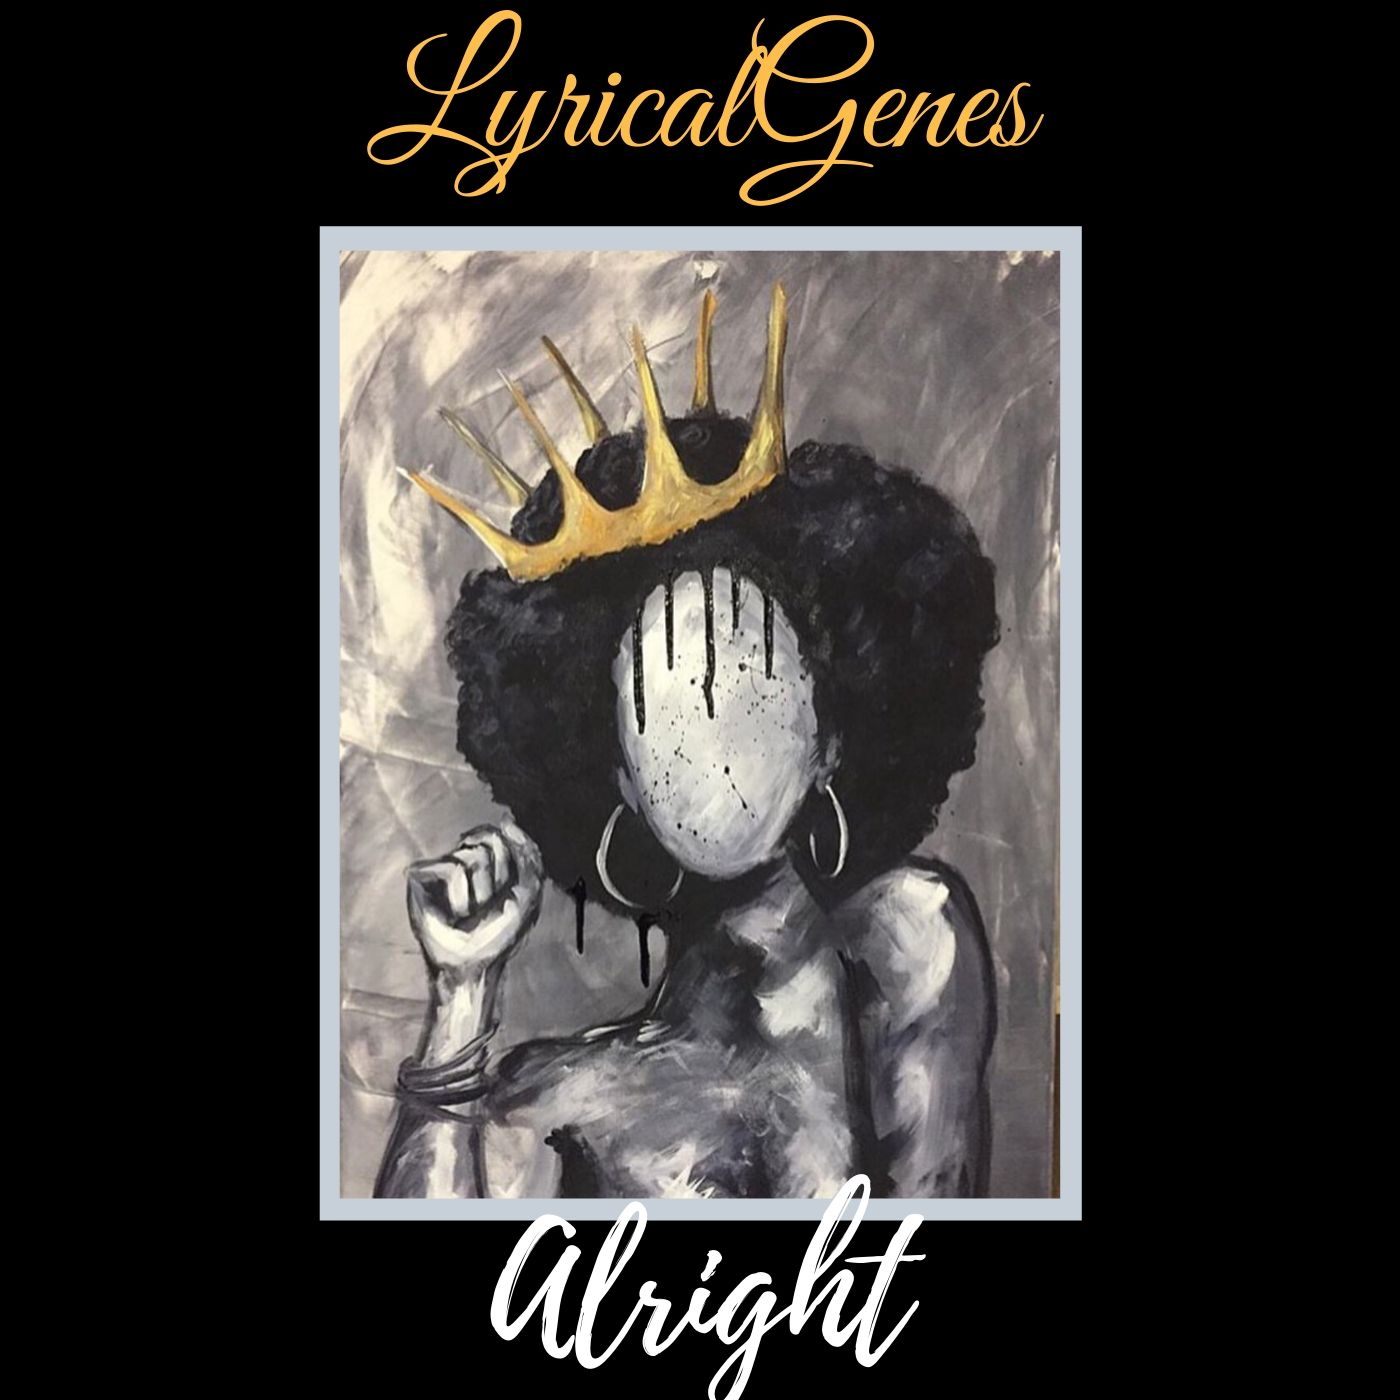 LyricalGenes Advocates For Women Especially In The Music Industry